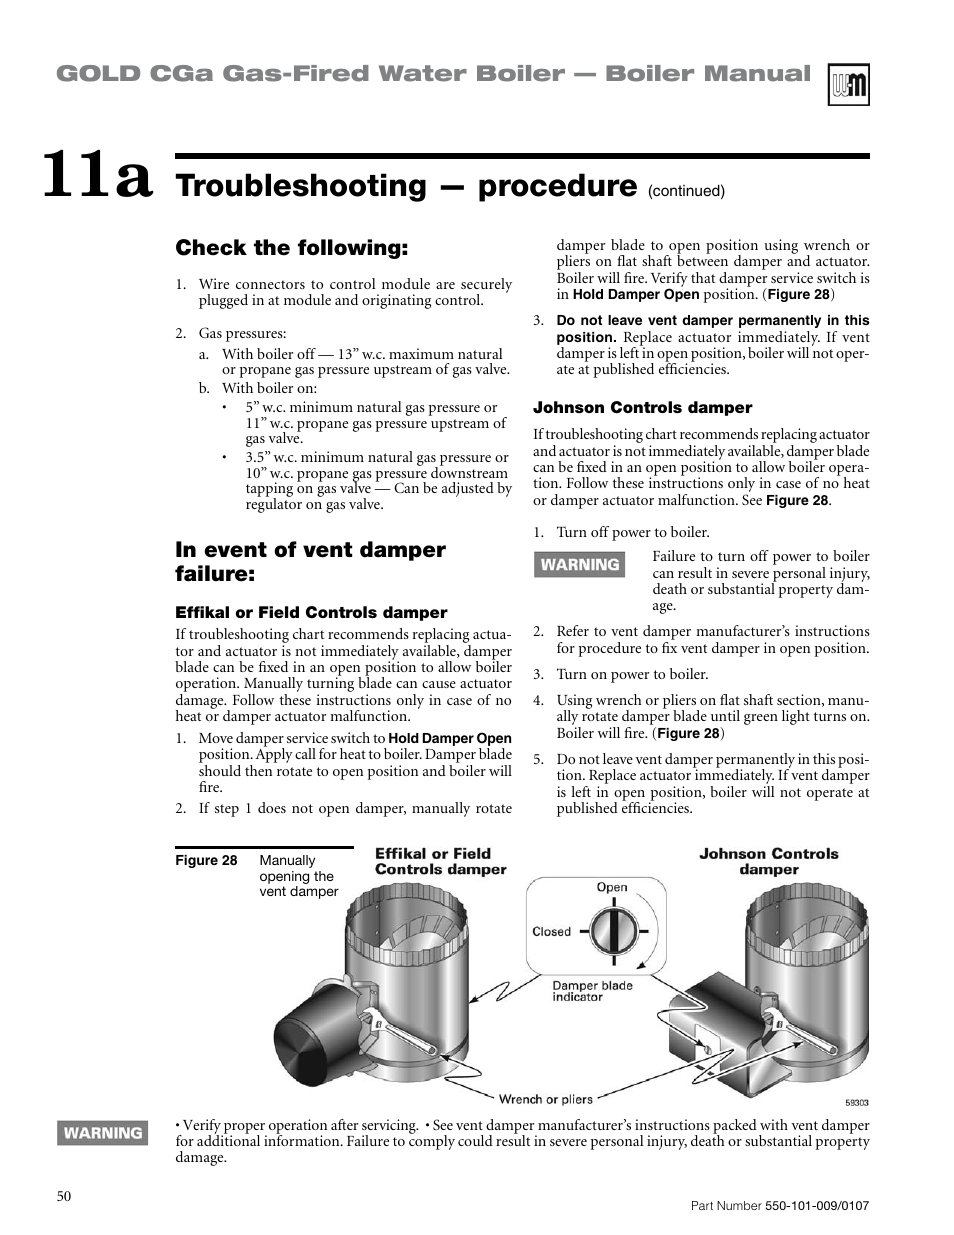 medium resolution of troubleshooting procedure gold cga gas fired water boiler boiler manual check the following weil mclain gold cga user manual page 50 68